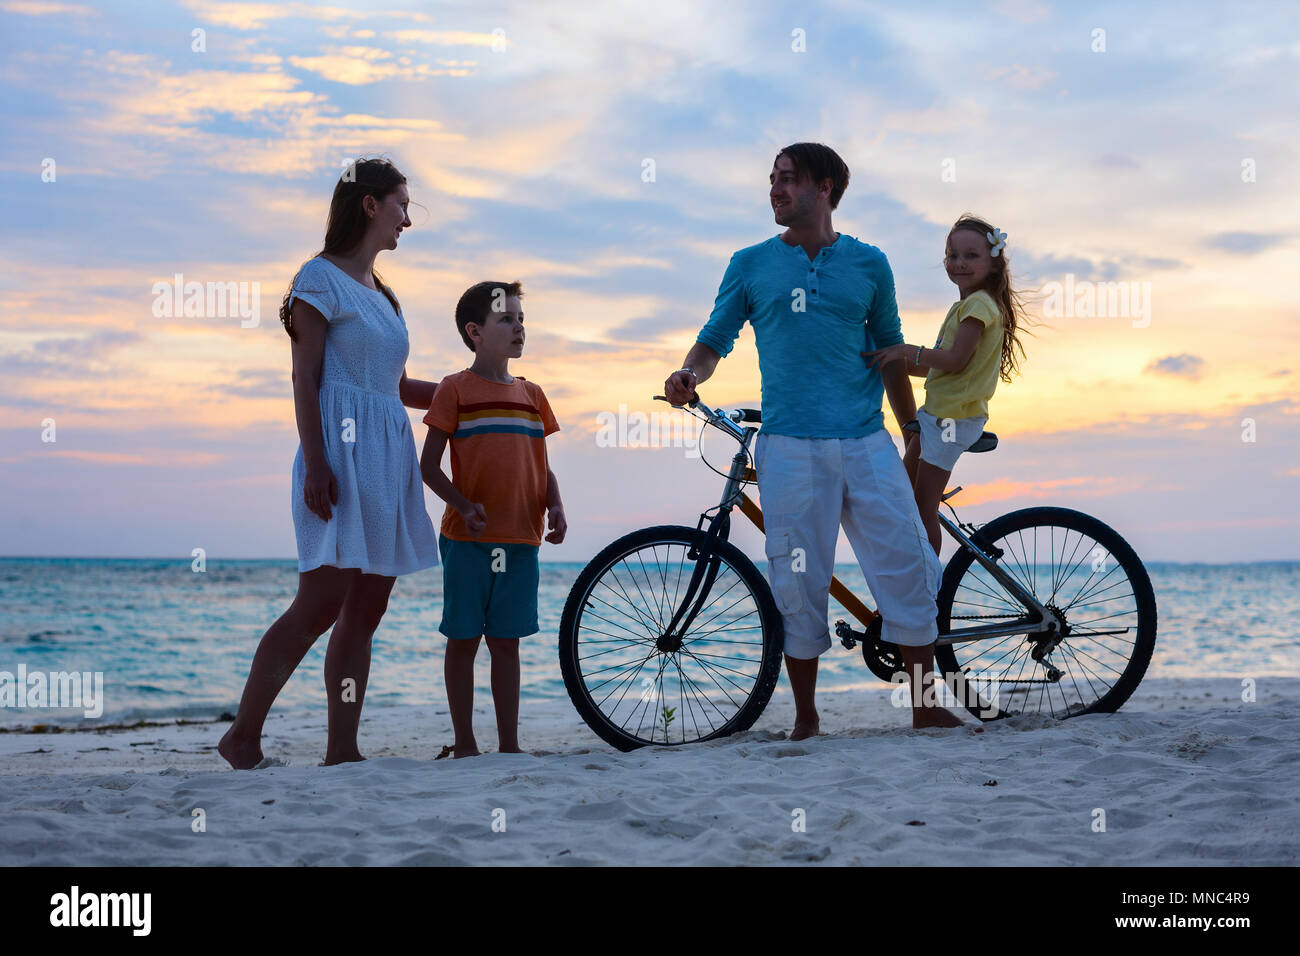 Family with a bike on tropical beach during sunset - Stock Image